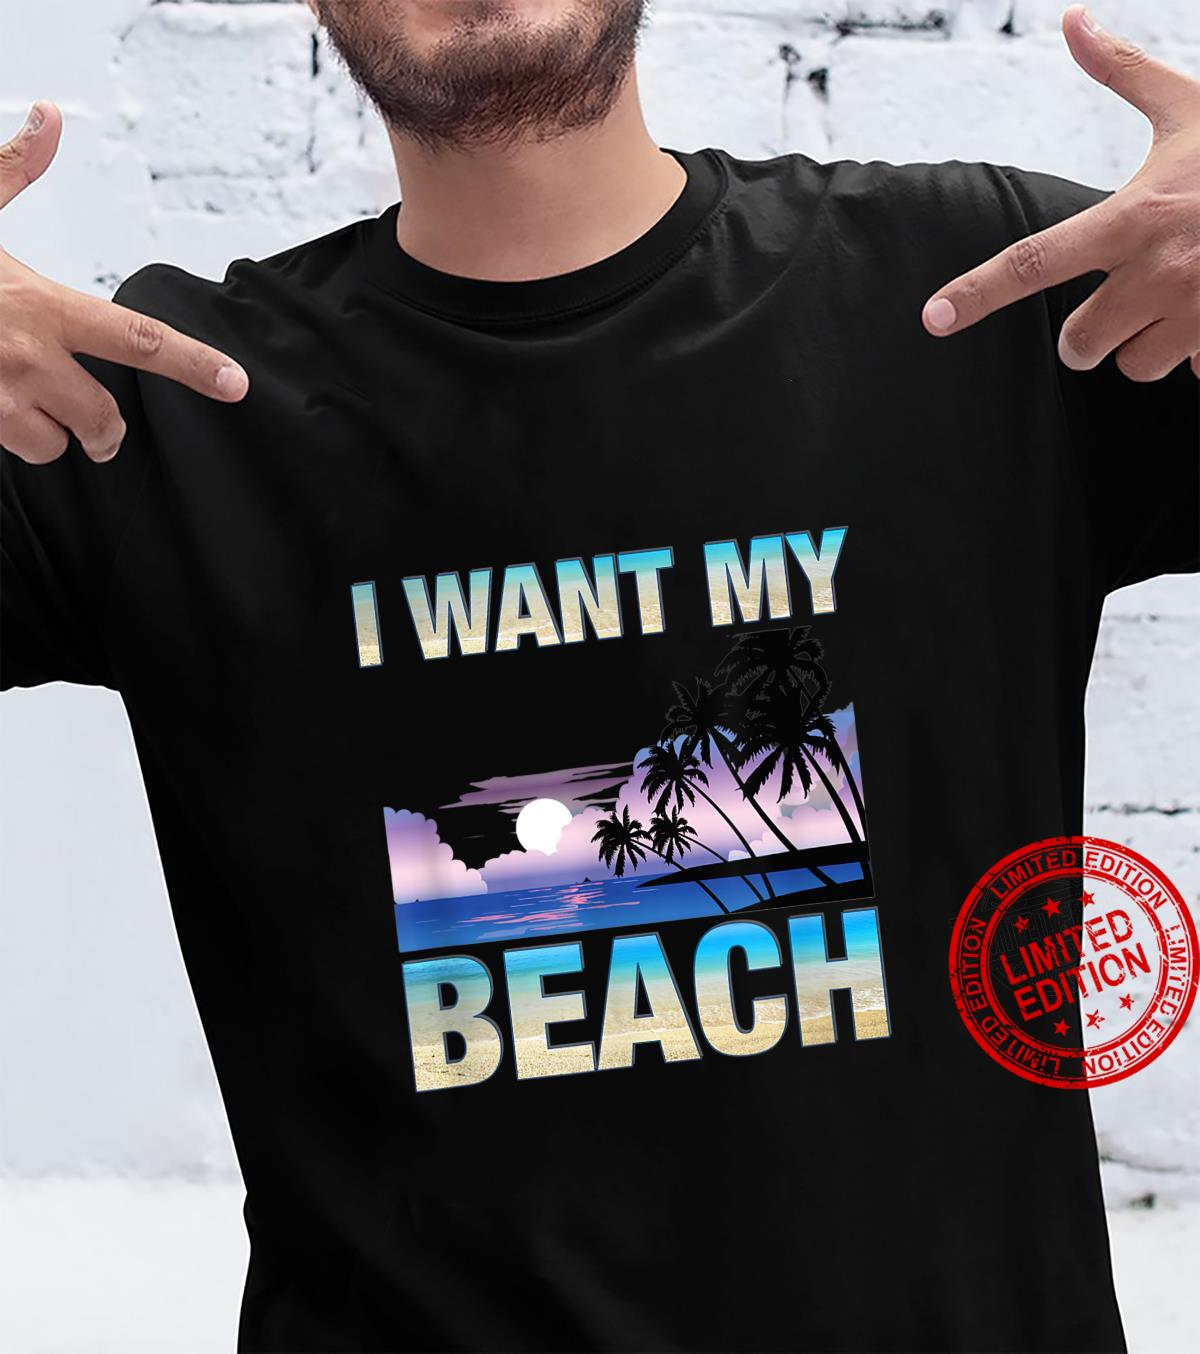 I WANT MY BEACH Shirt